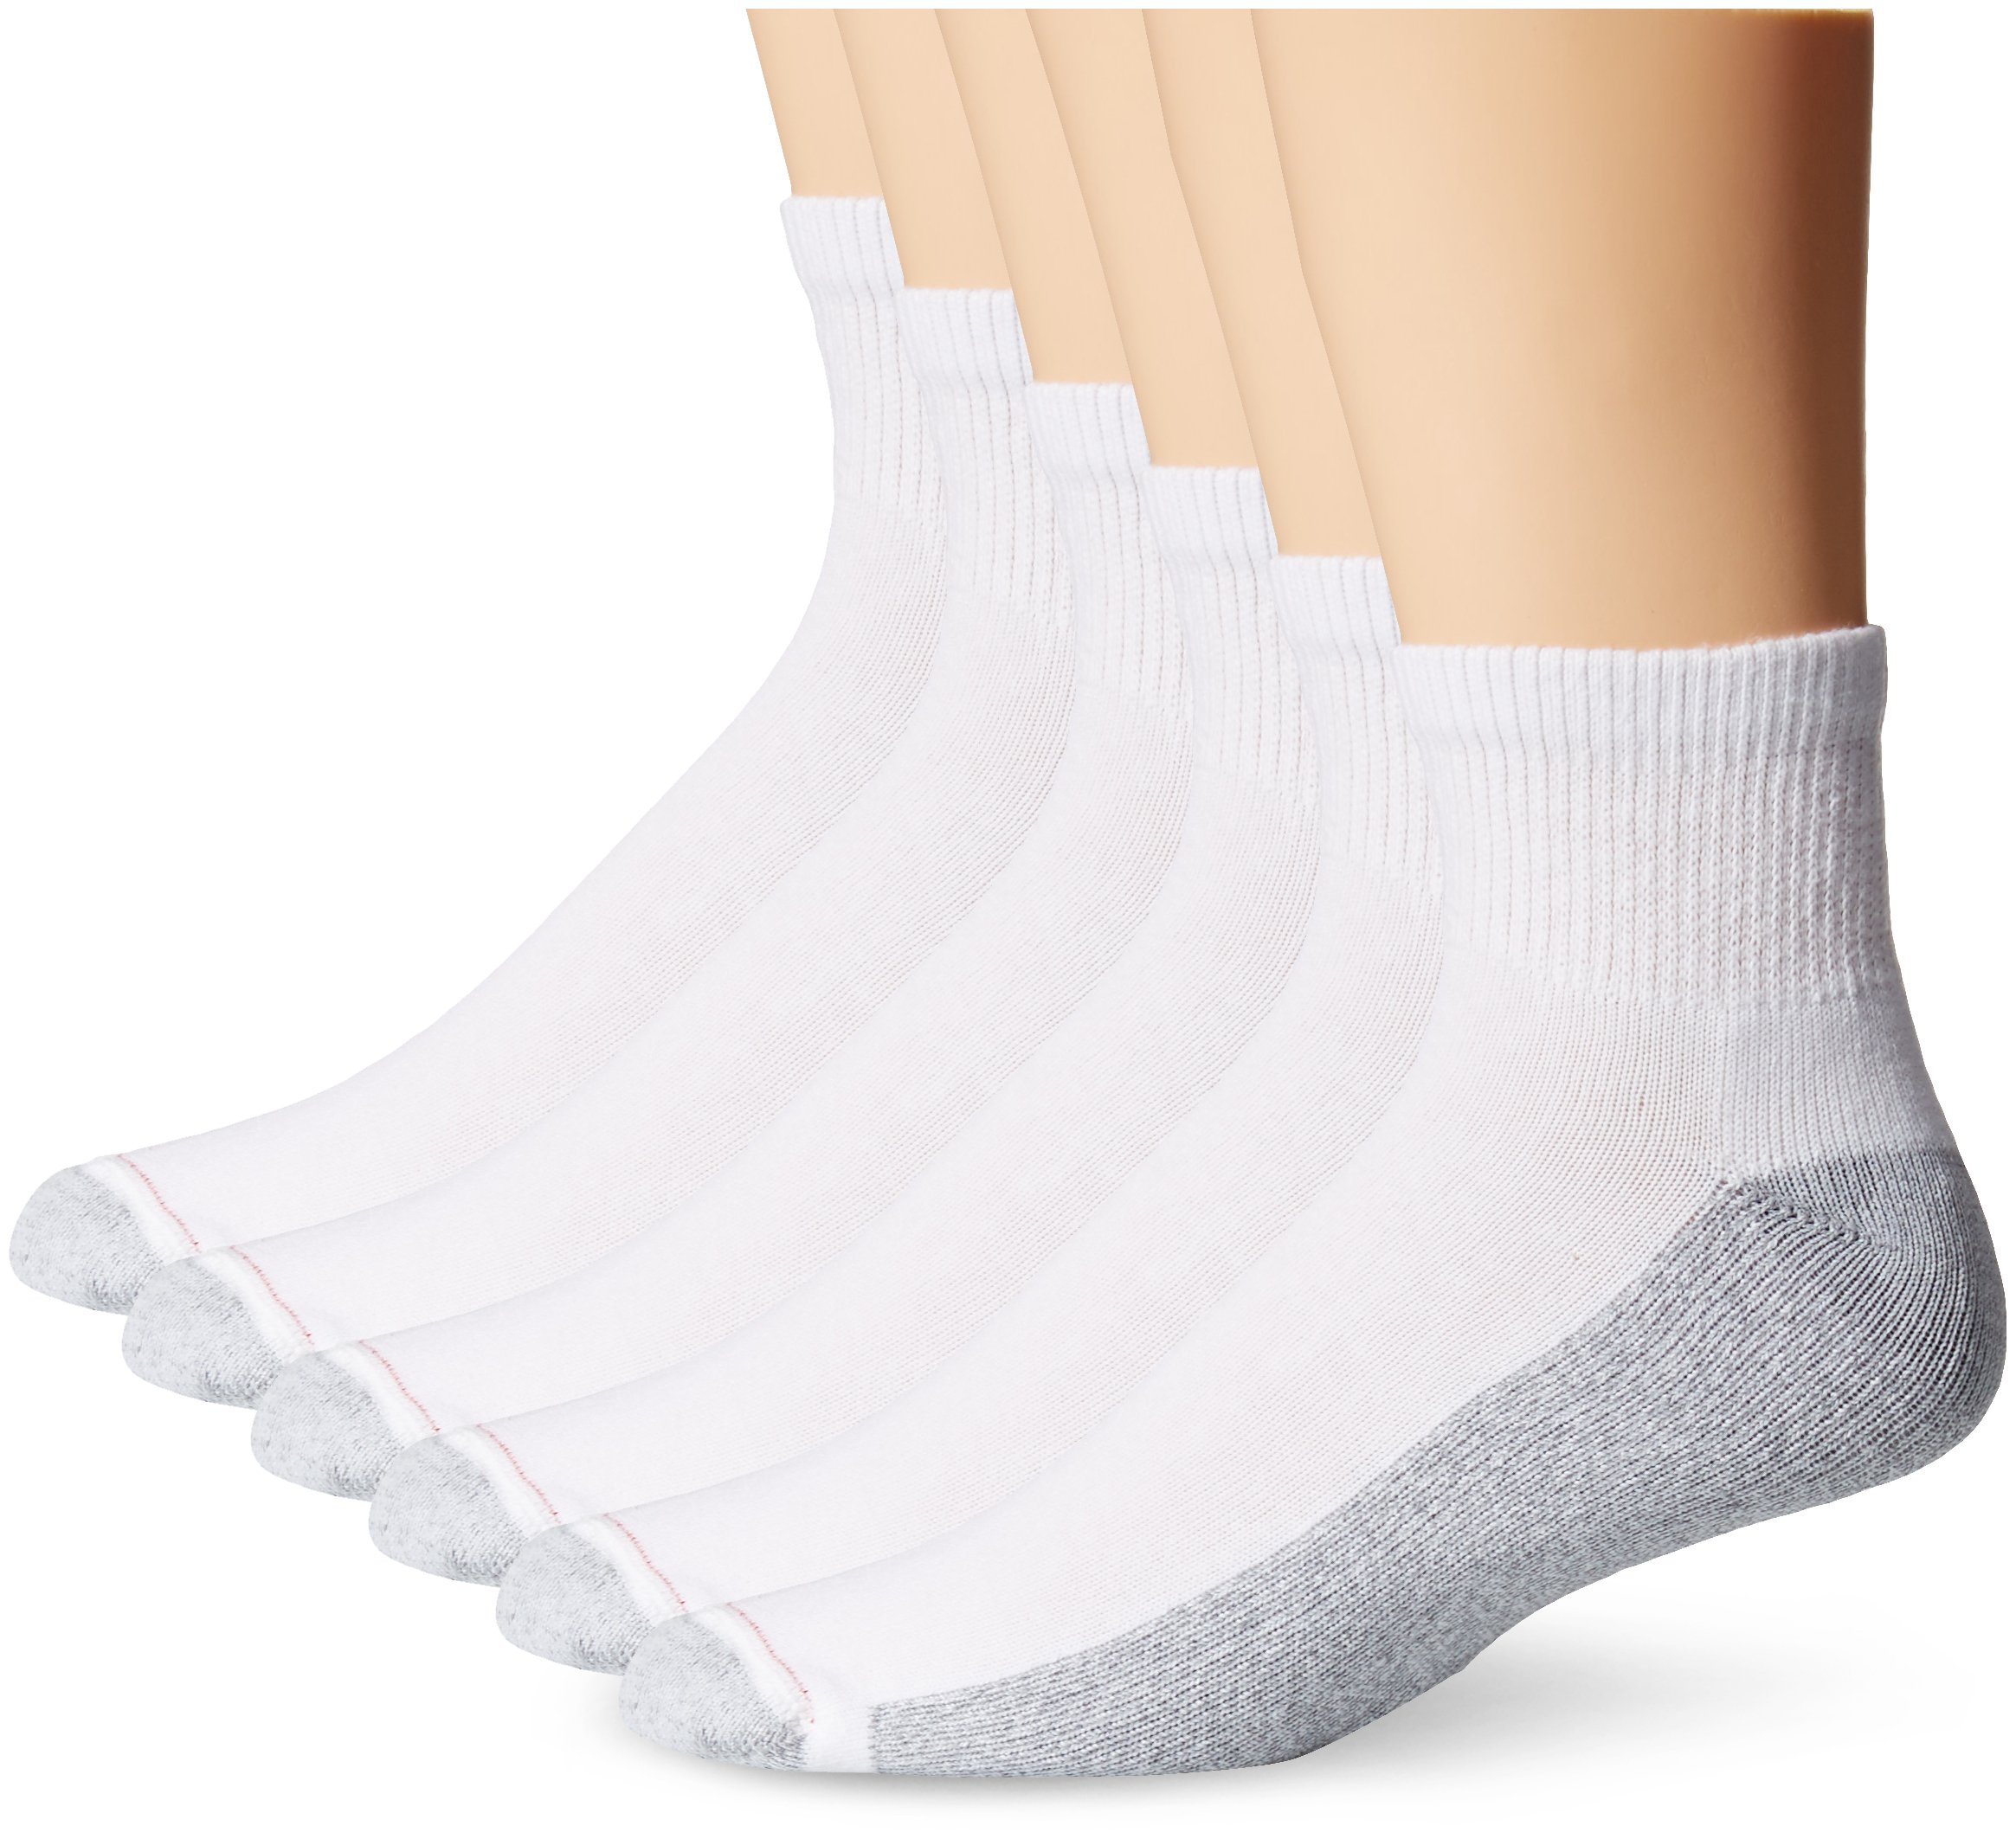 Hanes Men's FreshIQ Big-Tall ComfortBlend Ankle Socks, White, 12-14 (Pack of 6)